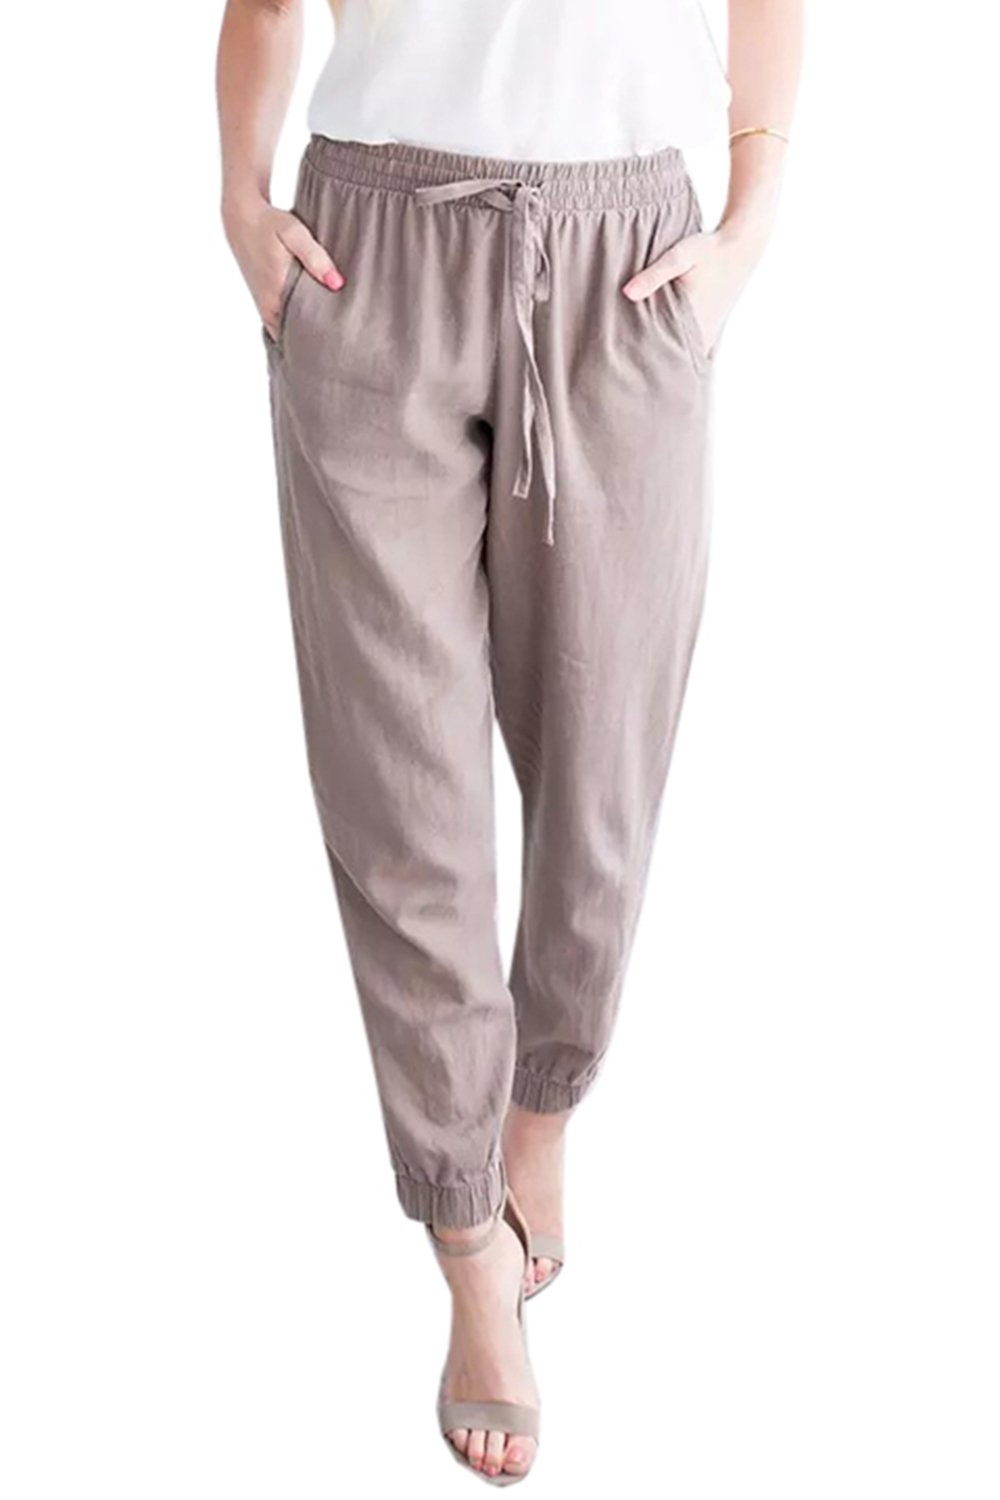 Mafulus Womens Linen Pants Casual Drawstring Elastic Waist Plus Size Harem Pants Pockets